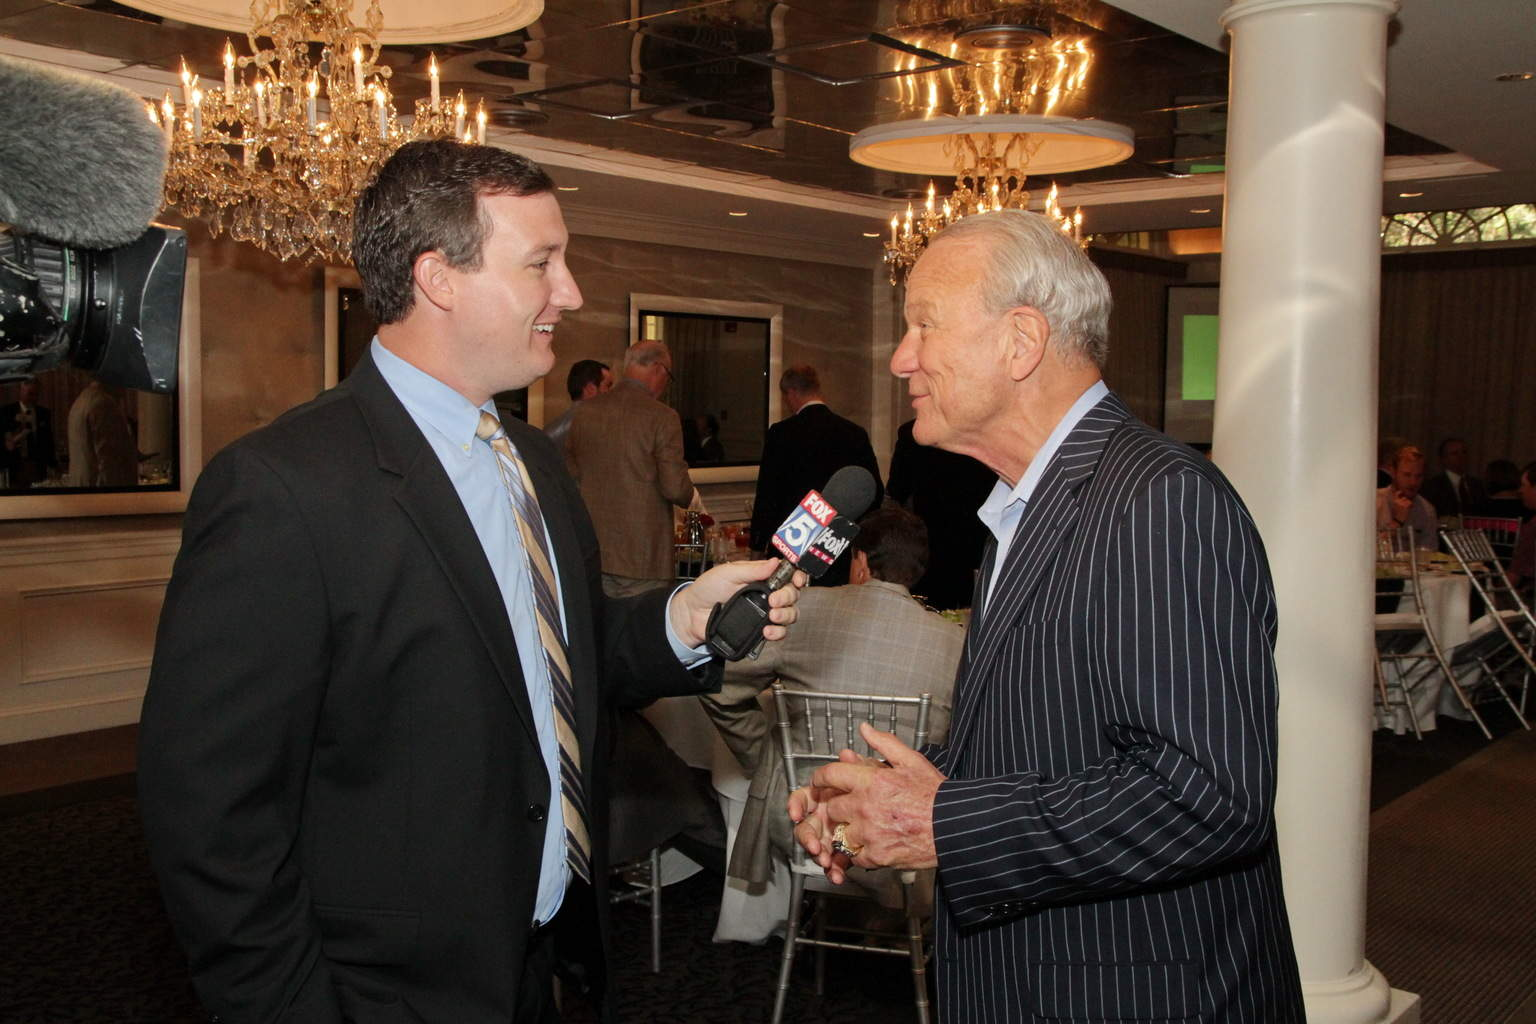 FOX 5 interviewing Barry Switzer